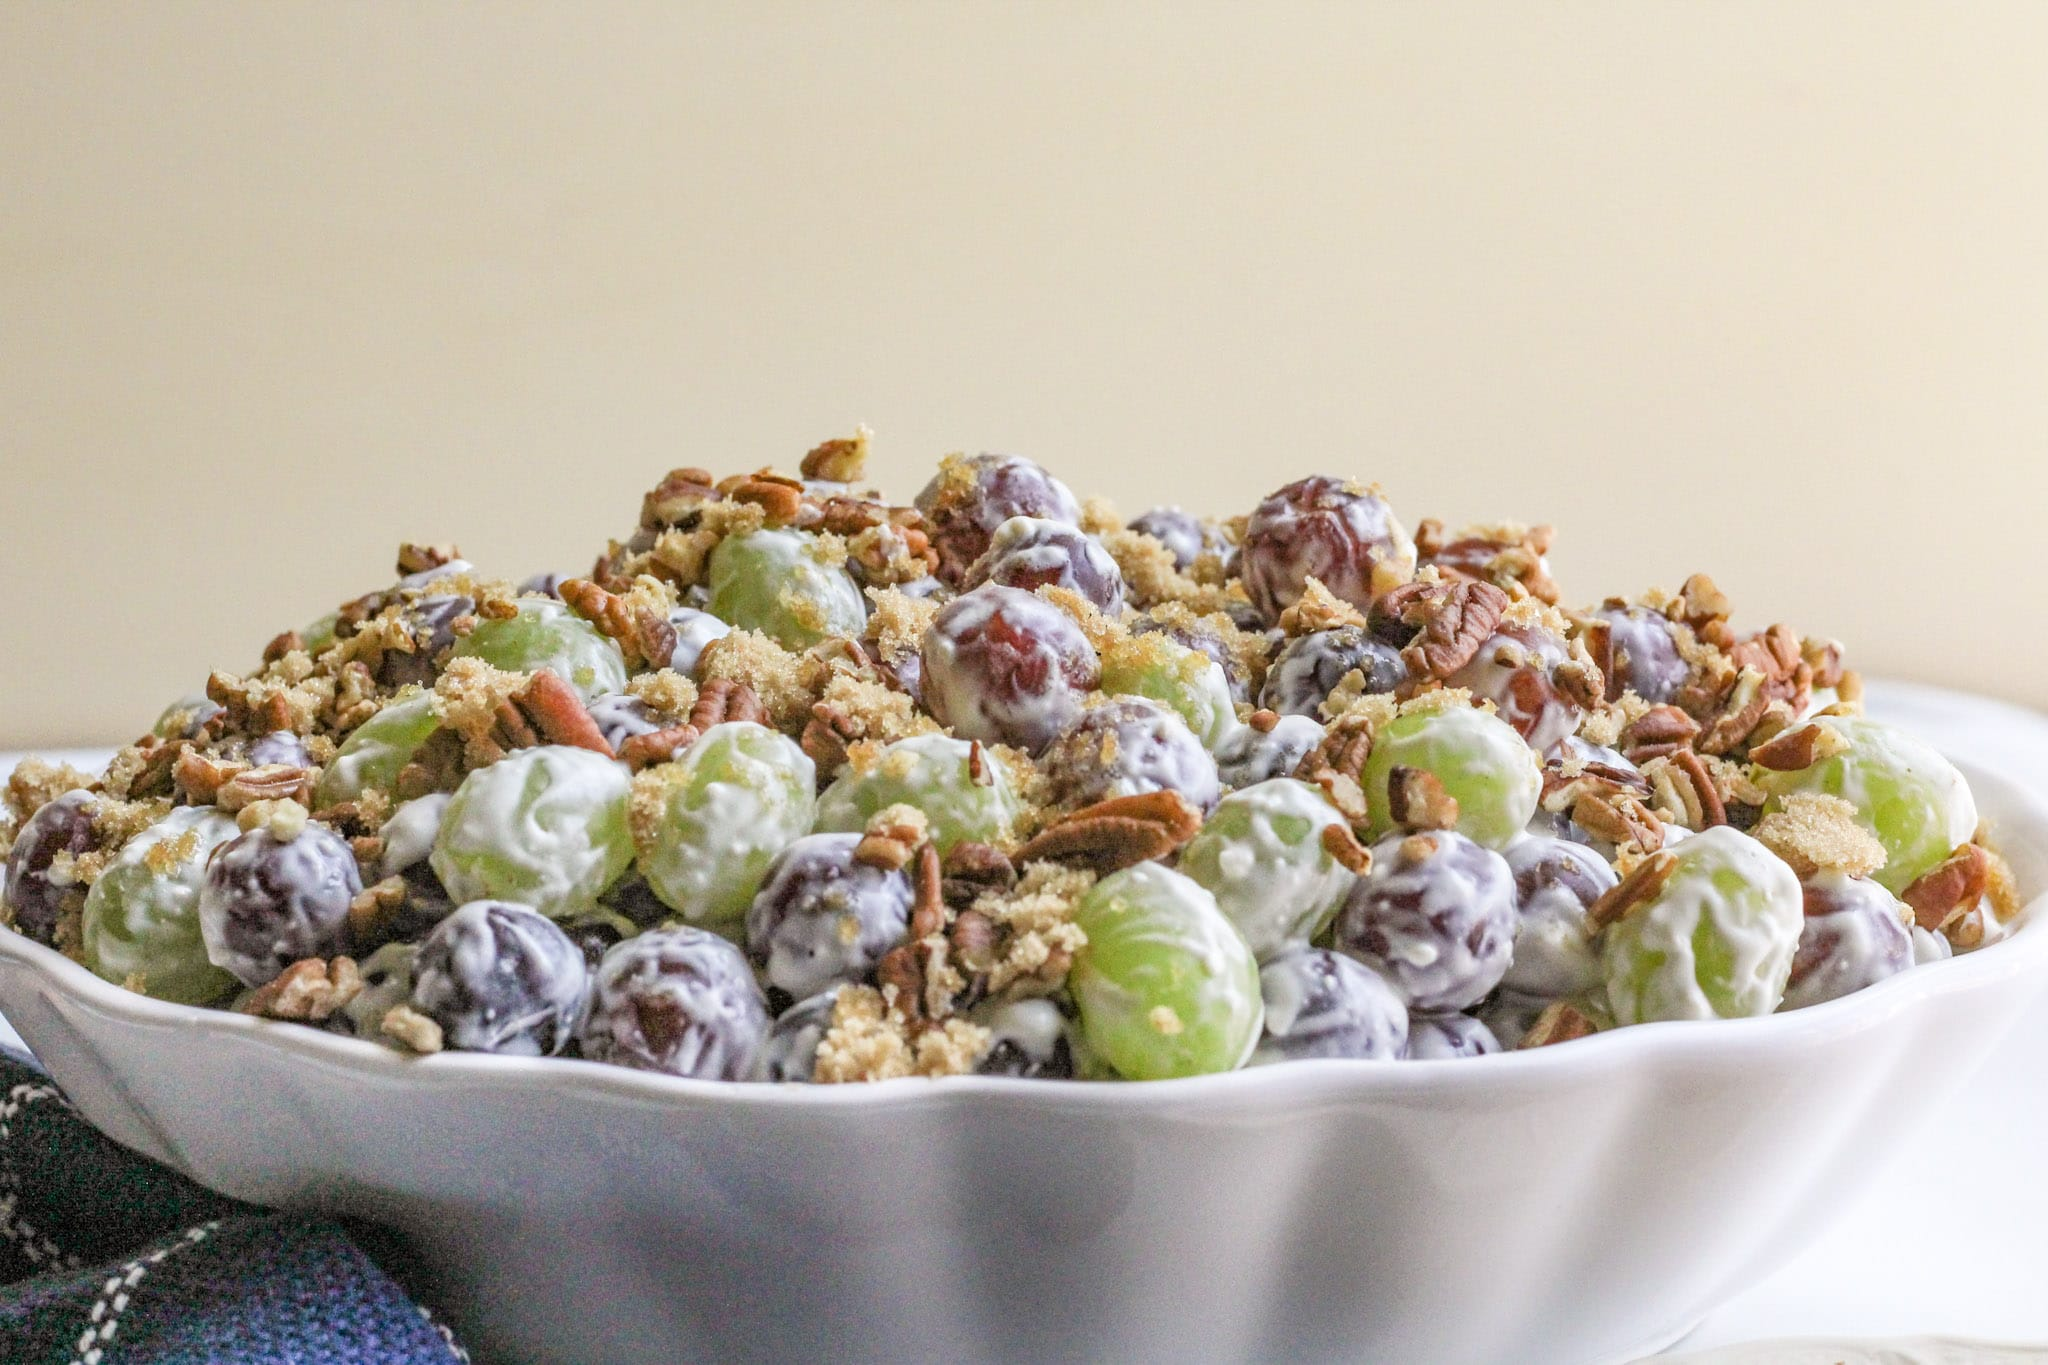 Grape Salad garnished with pecans and brown sugar piled high in a white serving bowl.